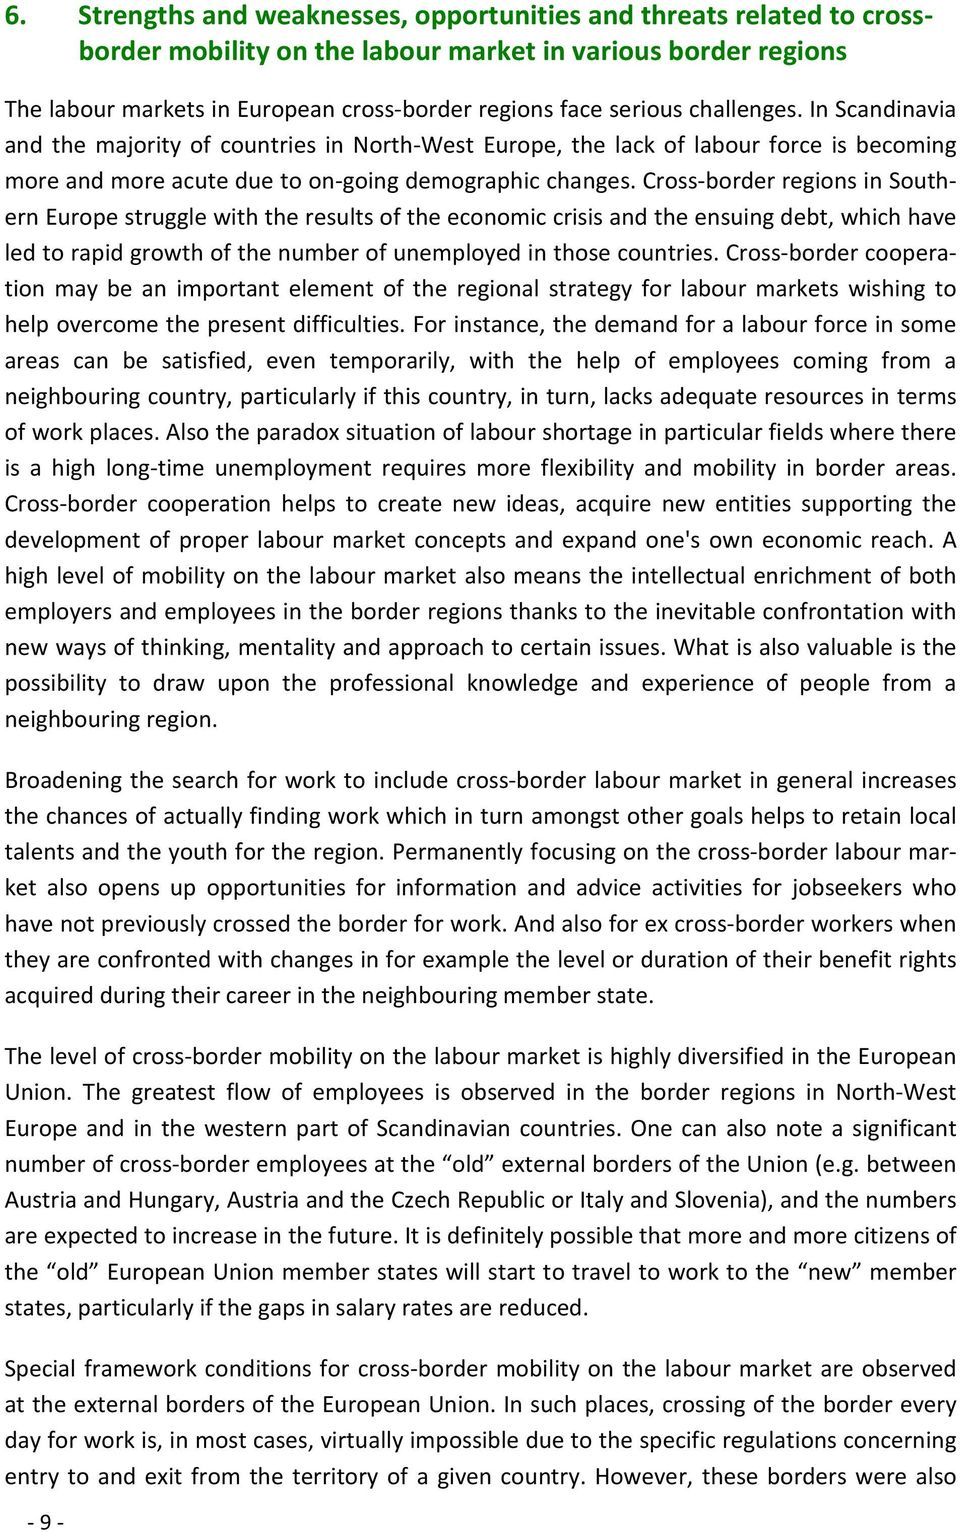 Cross-border regions in Southern Europe struggle with the results of the economic crisis and the ensuing debt, which have led to rapid growth of the number of unemployed in those countries.